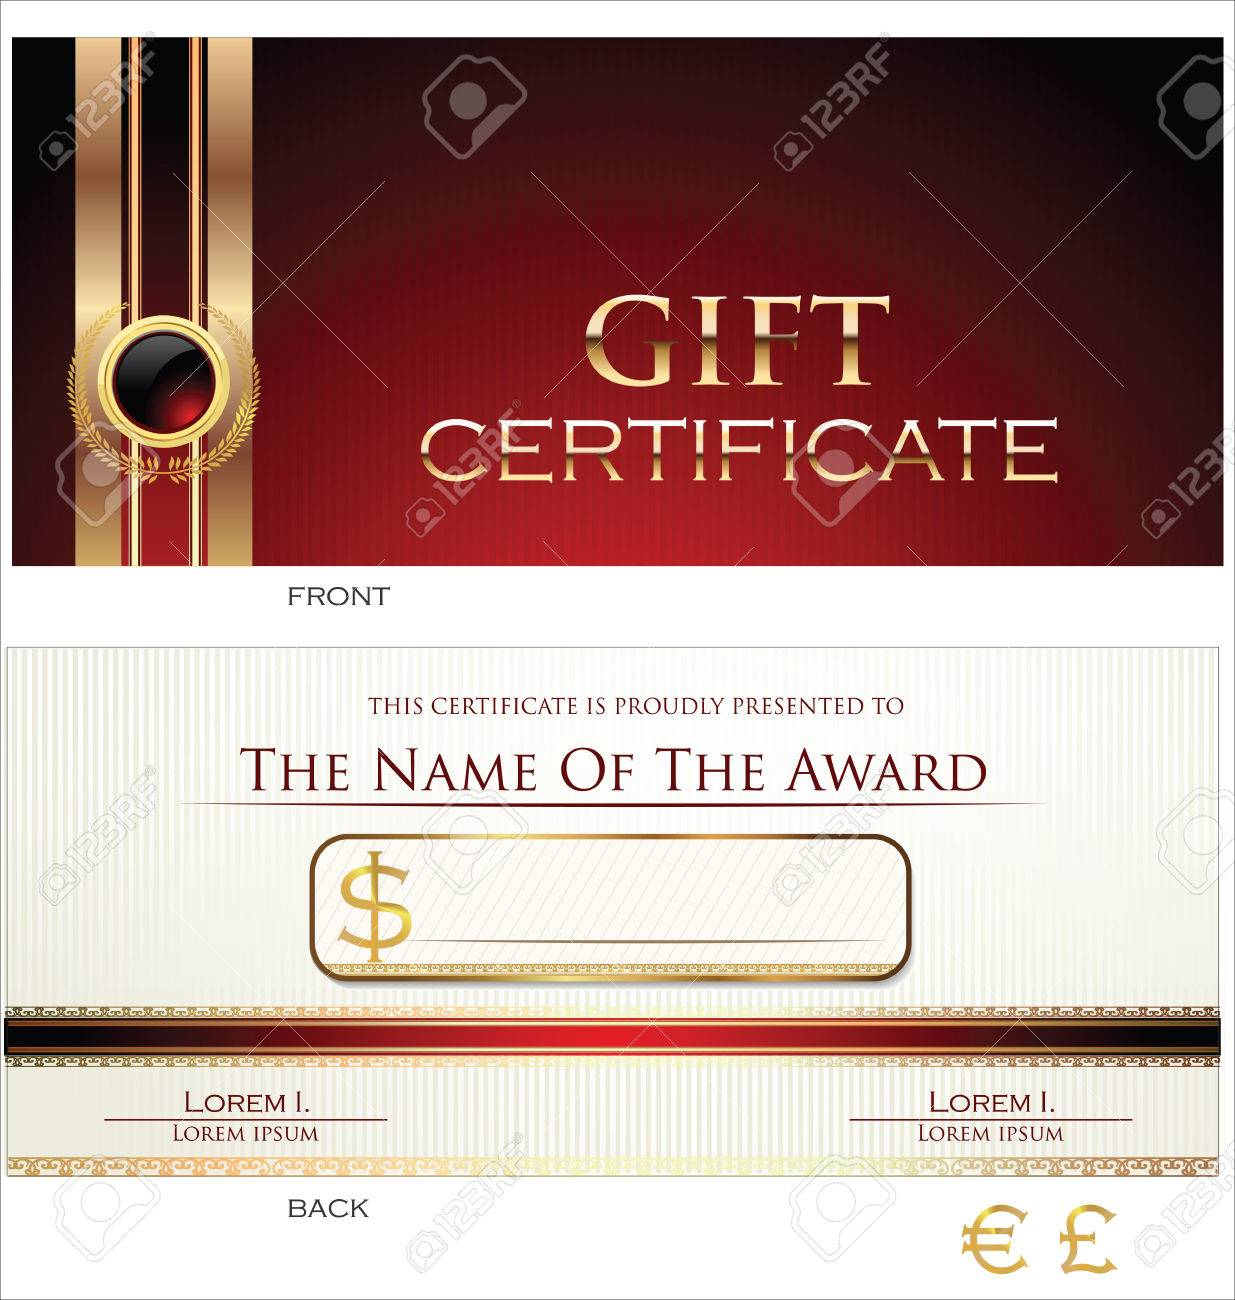 Stock certificate template word 2003 image collections stock certificate template word 2003 images certificate design stock certificate template word 2003 gallery certificate design yelopaper Gallery